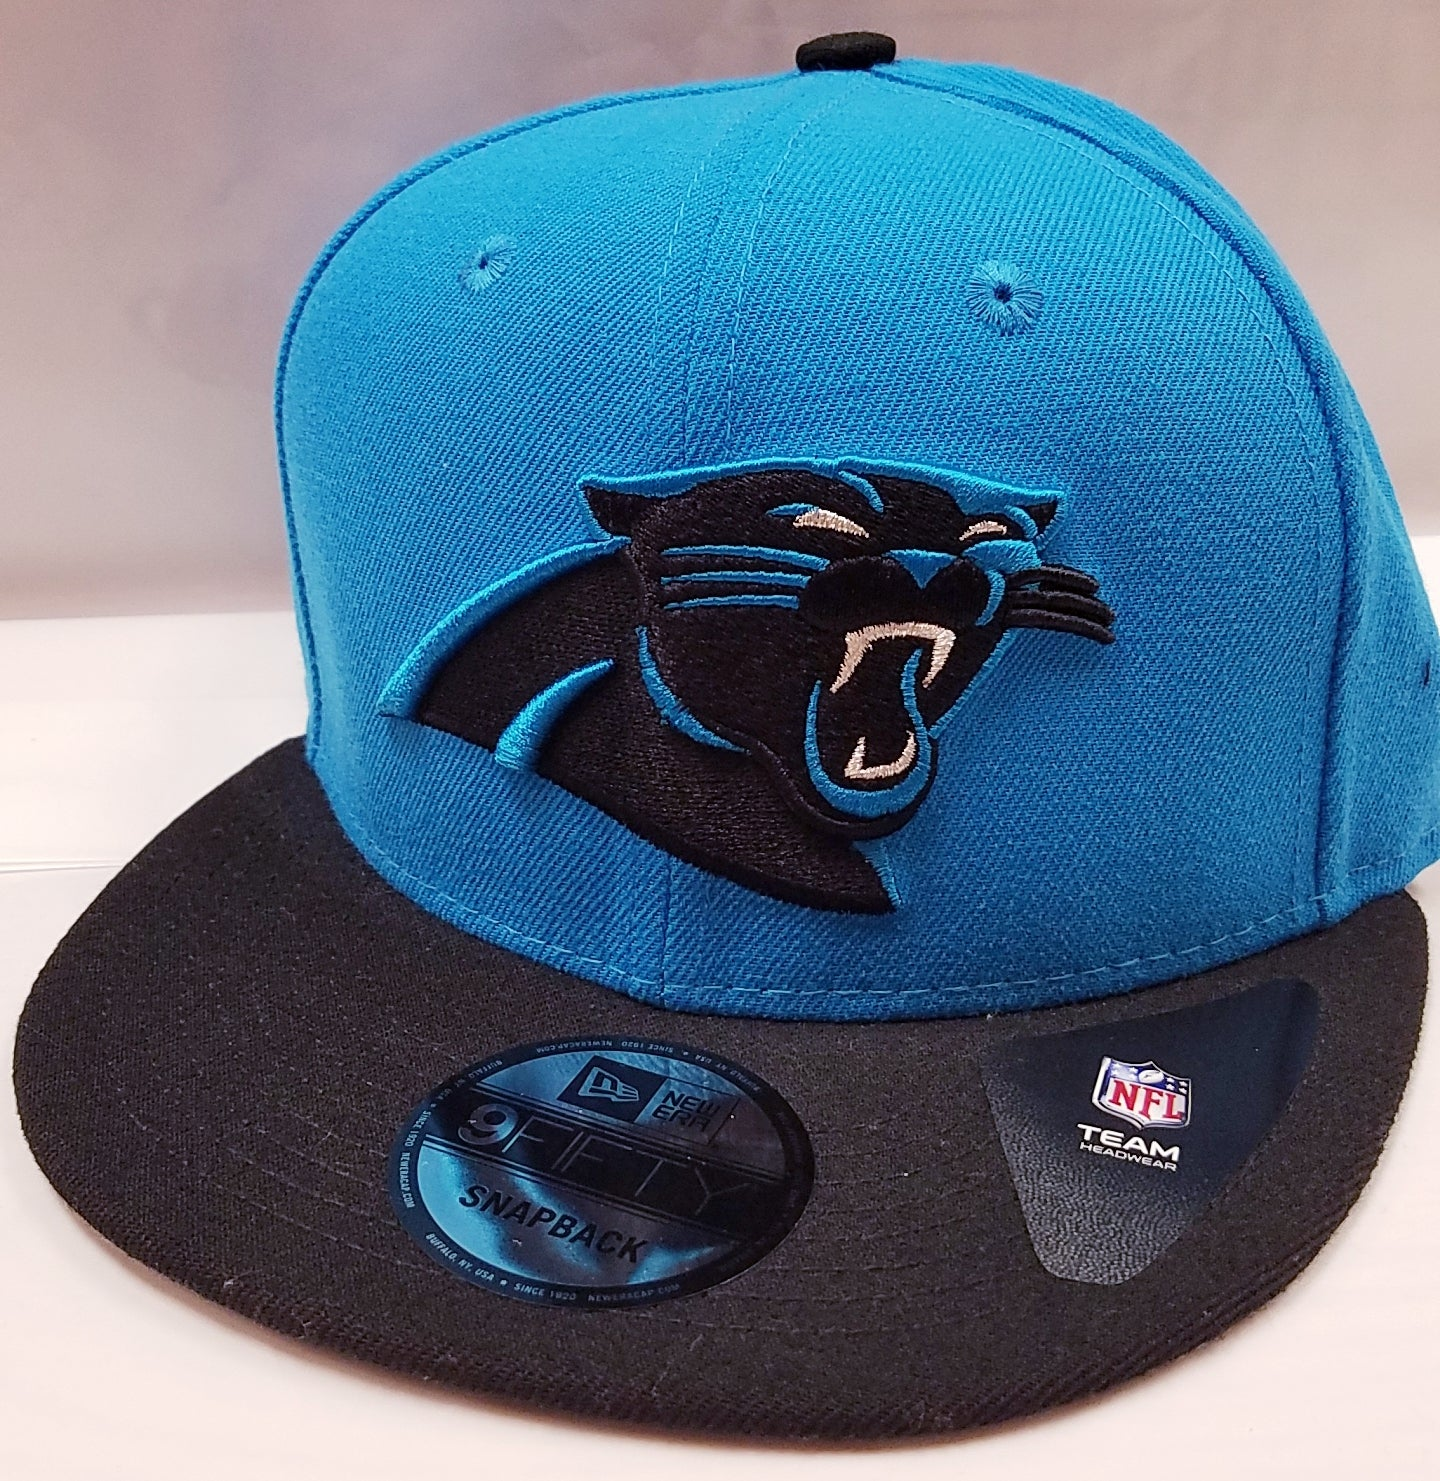 860bfd0328fdf Load image into Gallery viewer, New Era Team Patcher Carolina Panthers  Snapback ...